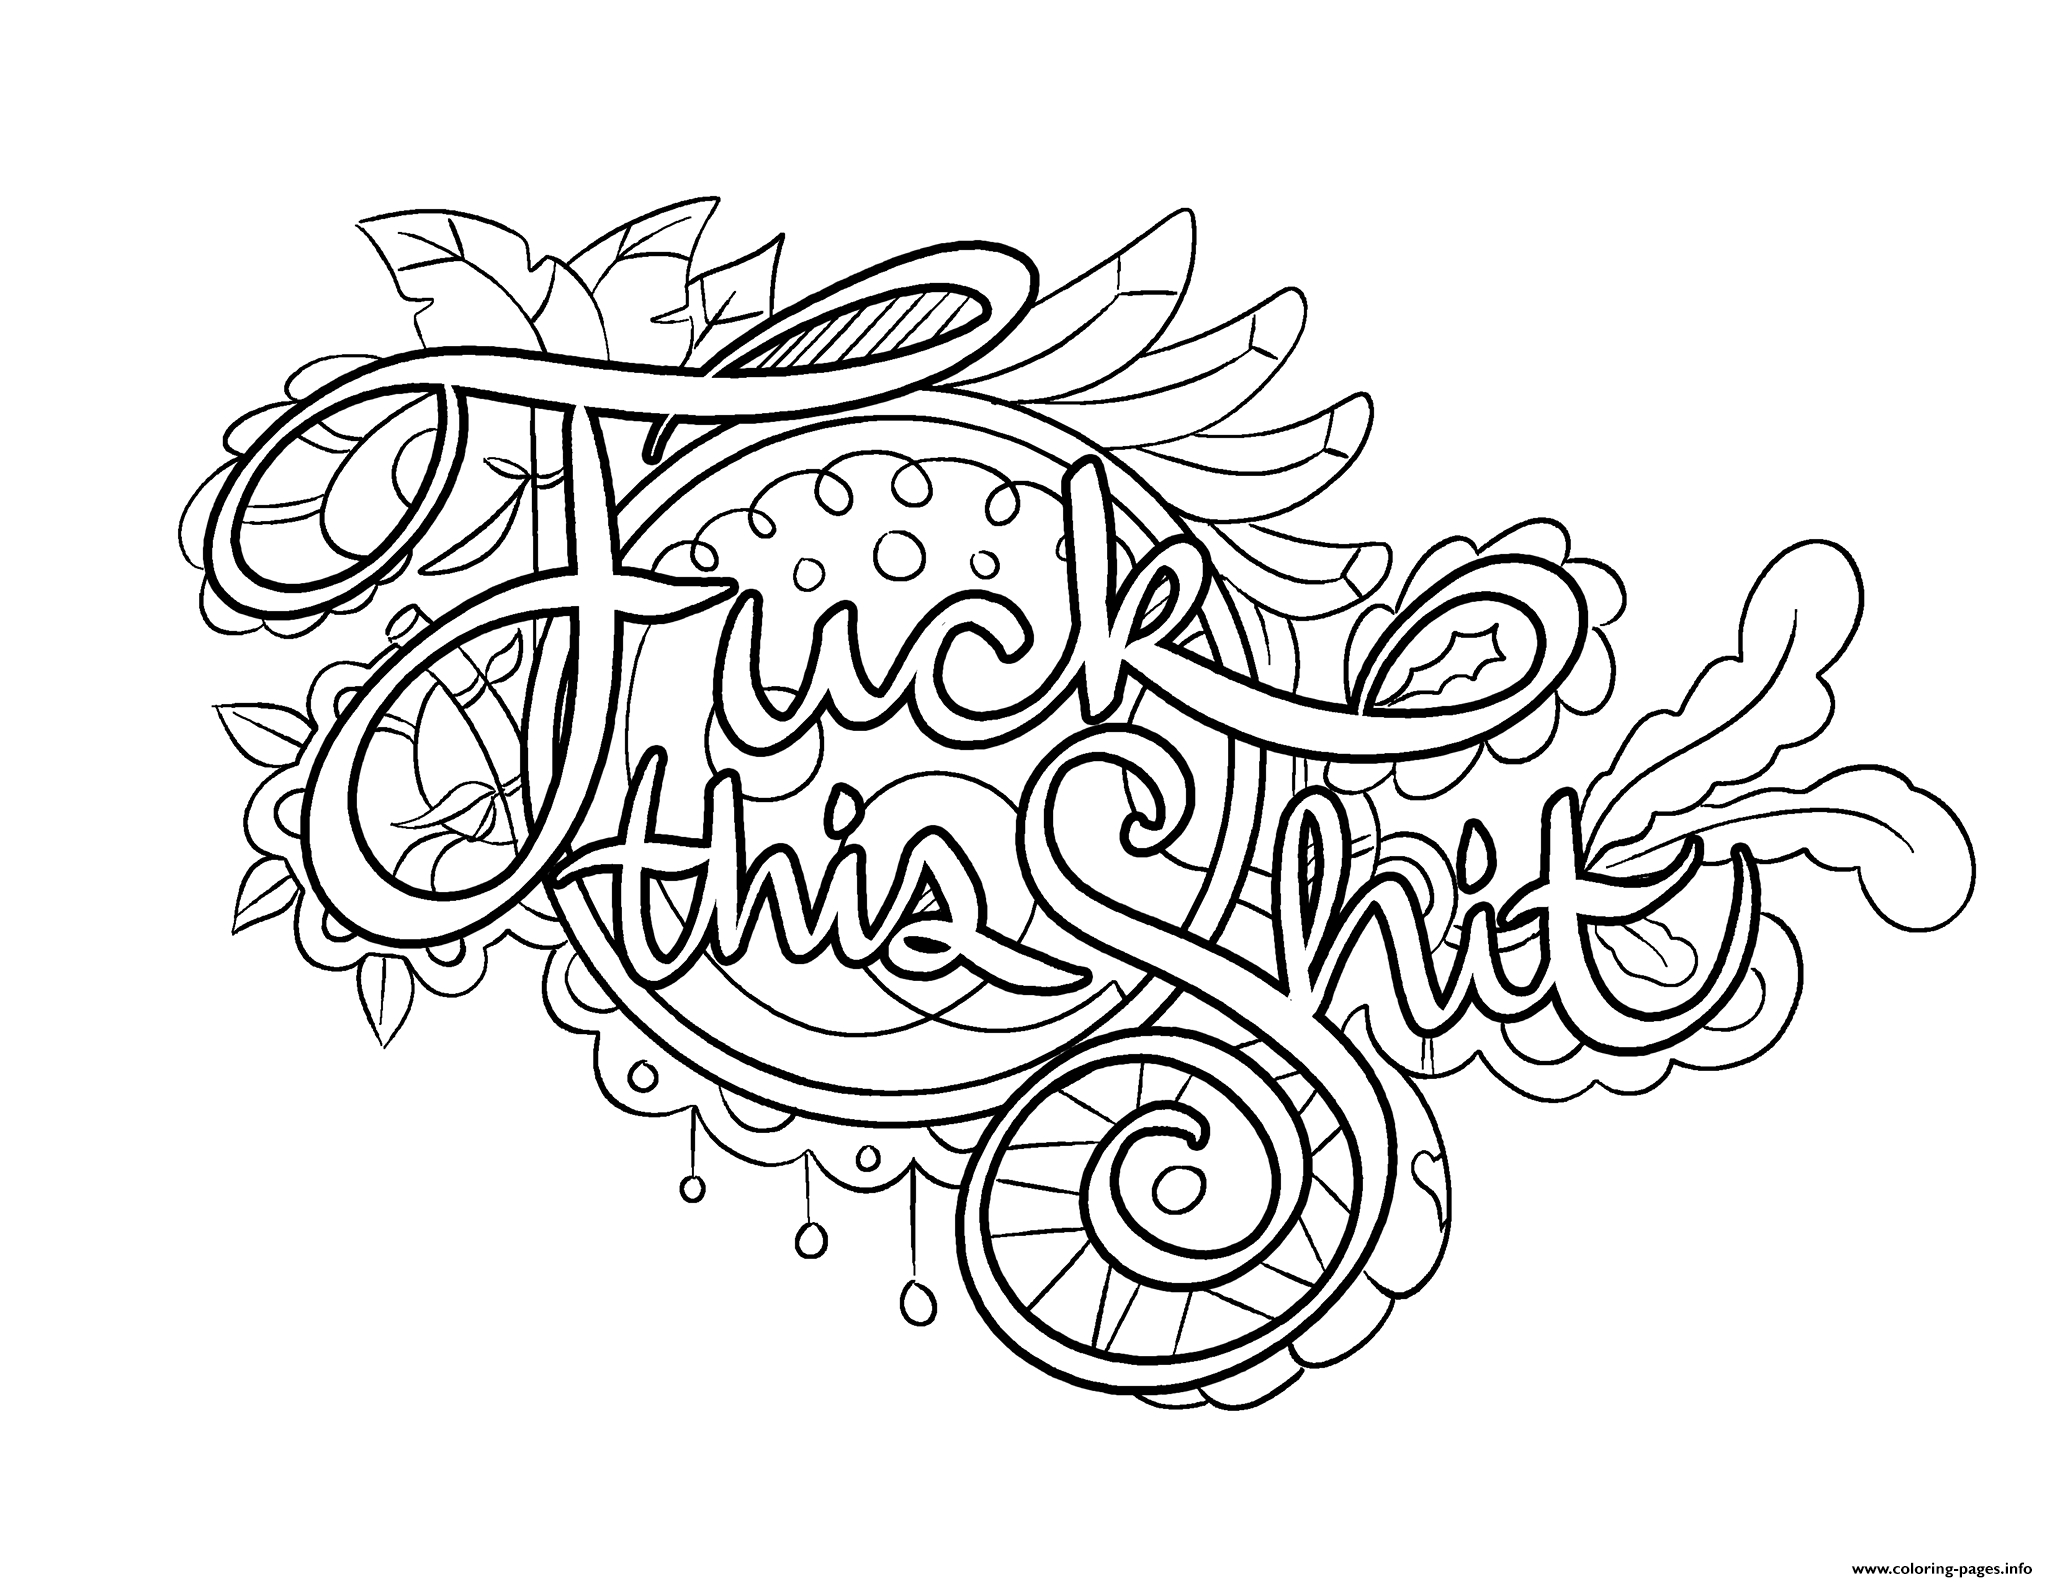 Fuck This Shit Swear Word Coloring Pages Printable - Swear Word Coloring Pages Printable Free